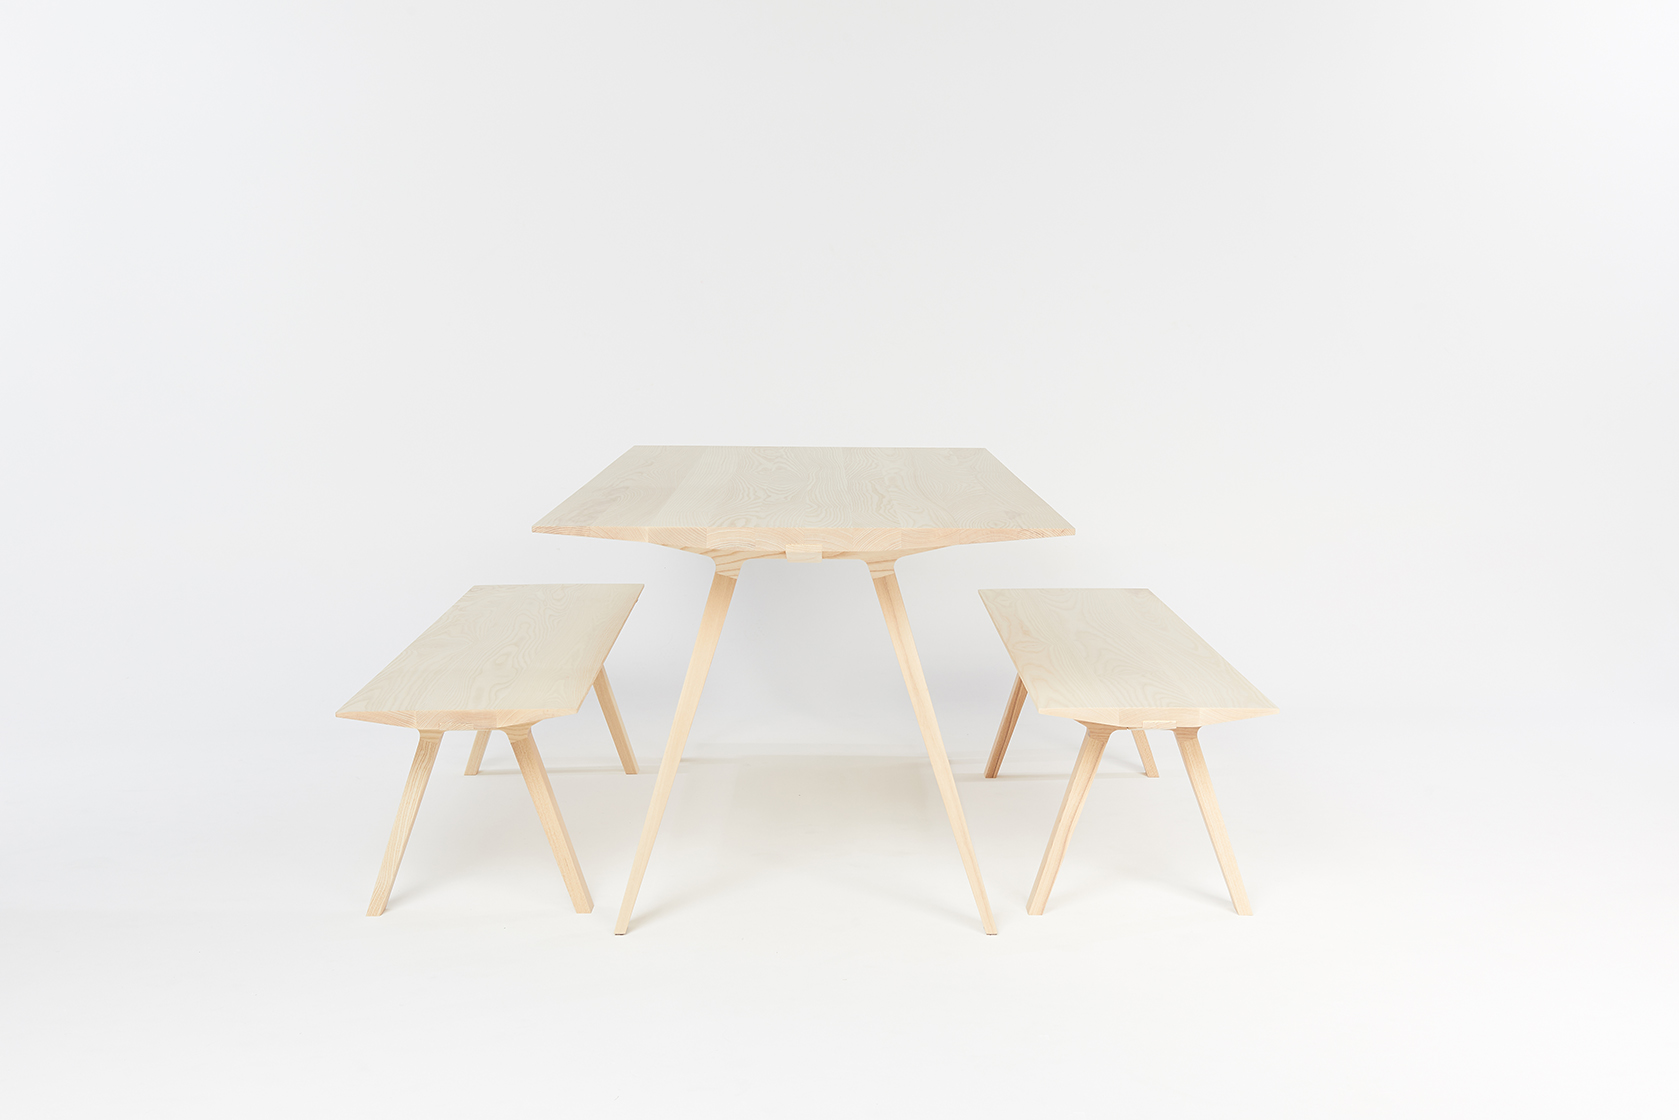 Louis Table by Mast Furniture and designed by Tom Fereday. Modern, handmade furniture.